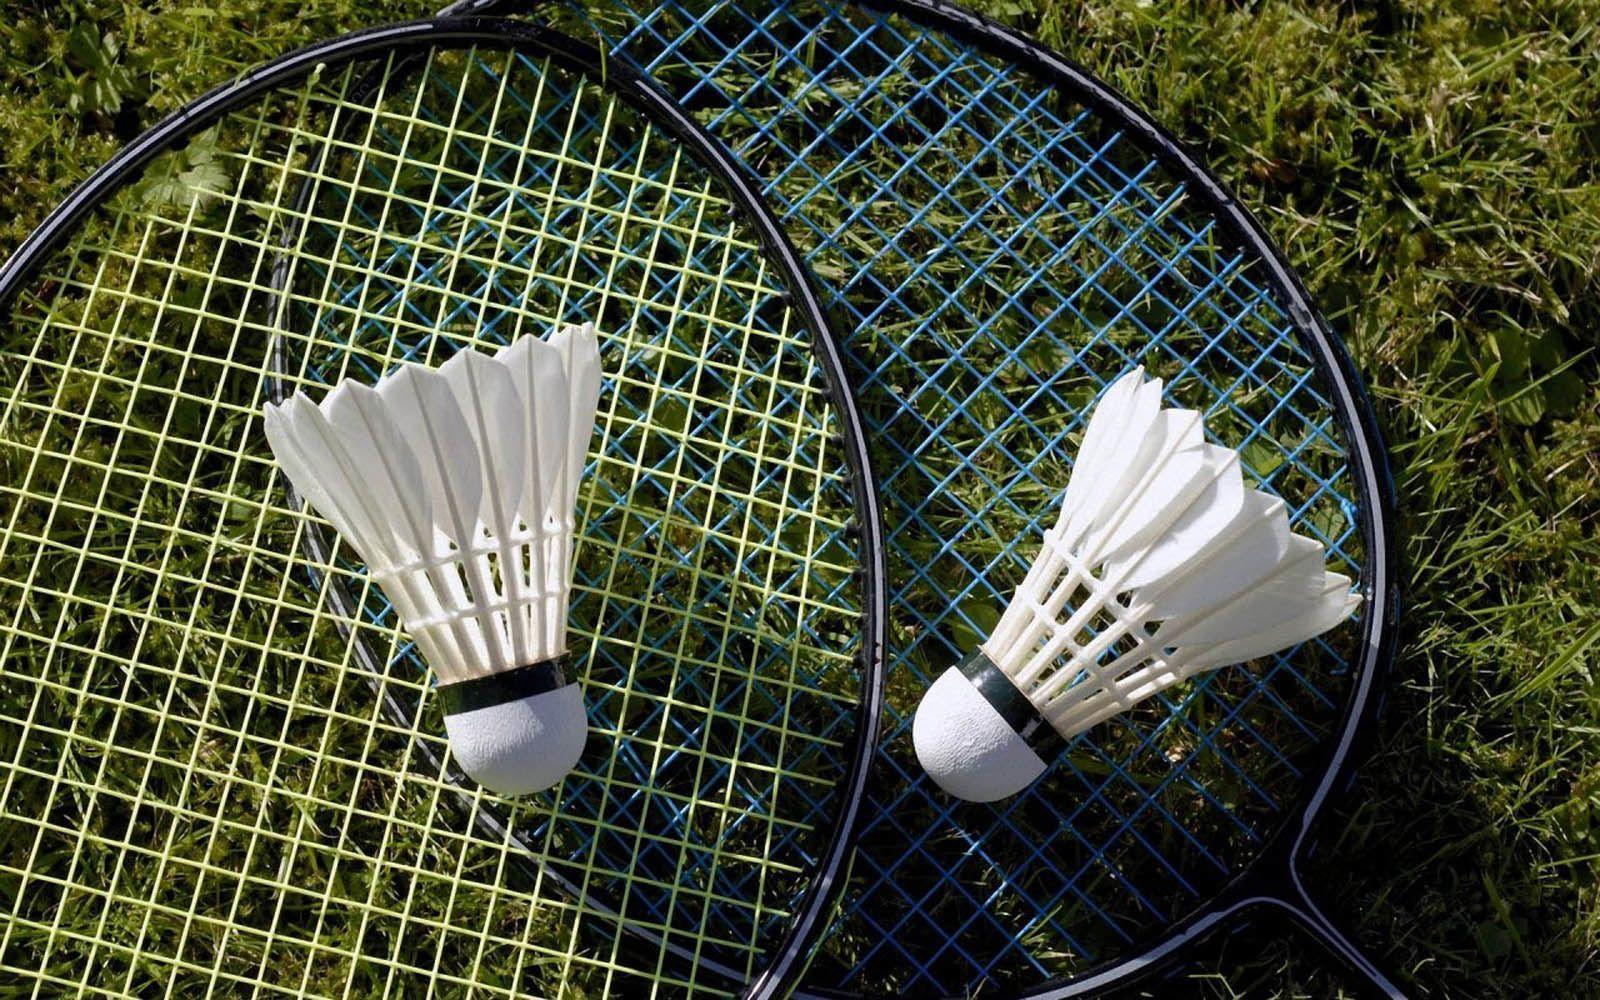 13 Badminton HD Wallpapers | Backgrounds - Wallpaper Abyss